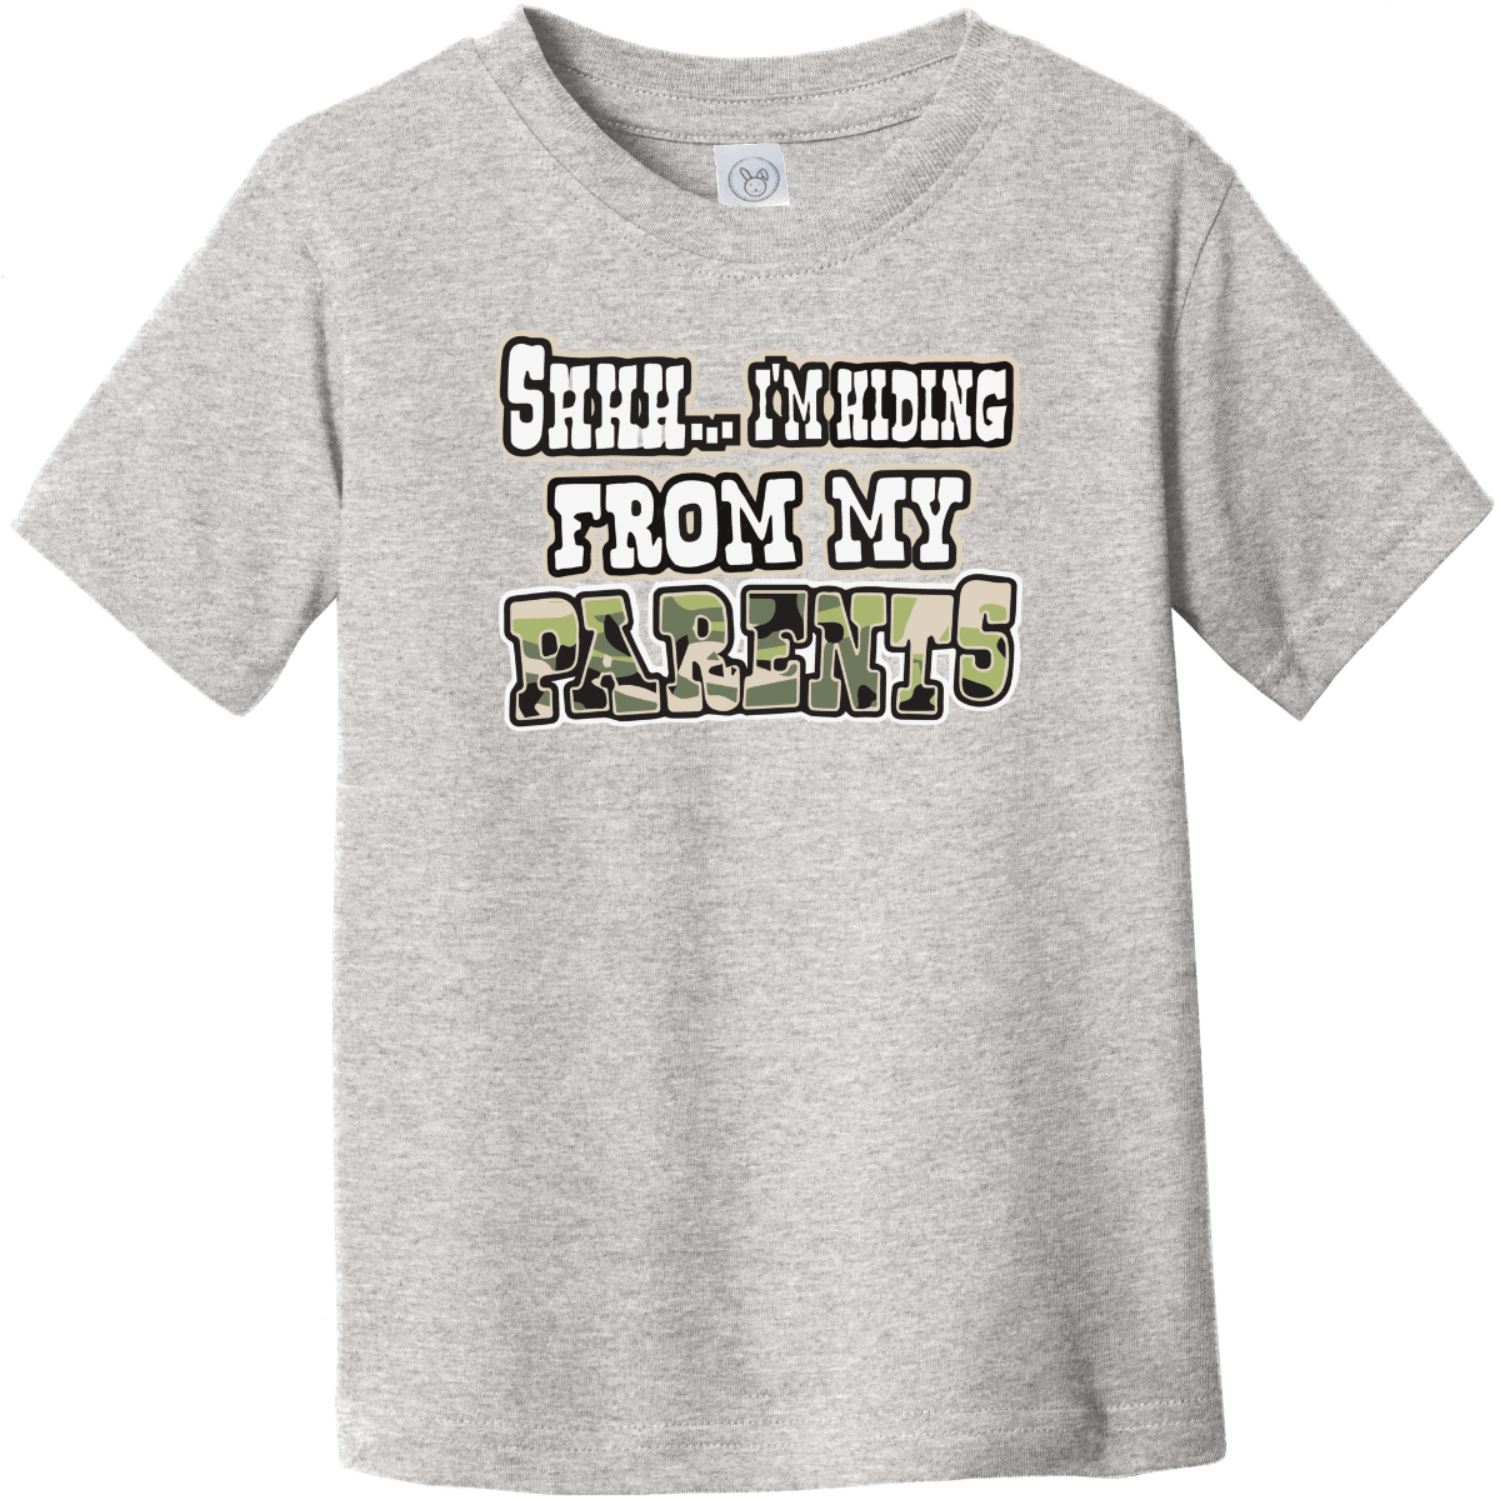 Shhh I'm Hiding From My Parents Toddler T-Shirt Heather Rabbit Skins Toddler Fine Jersey Tee RS3321